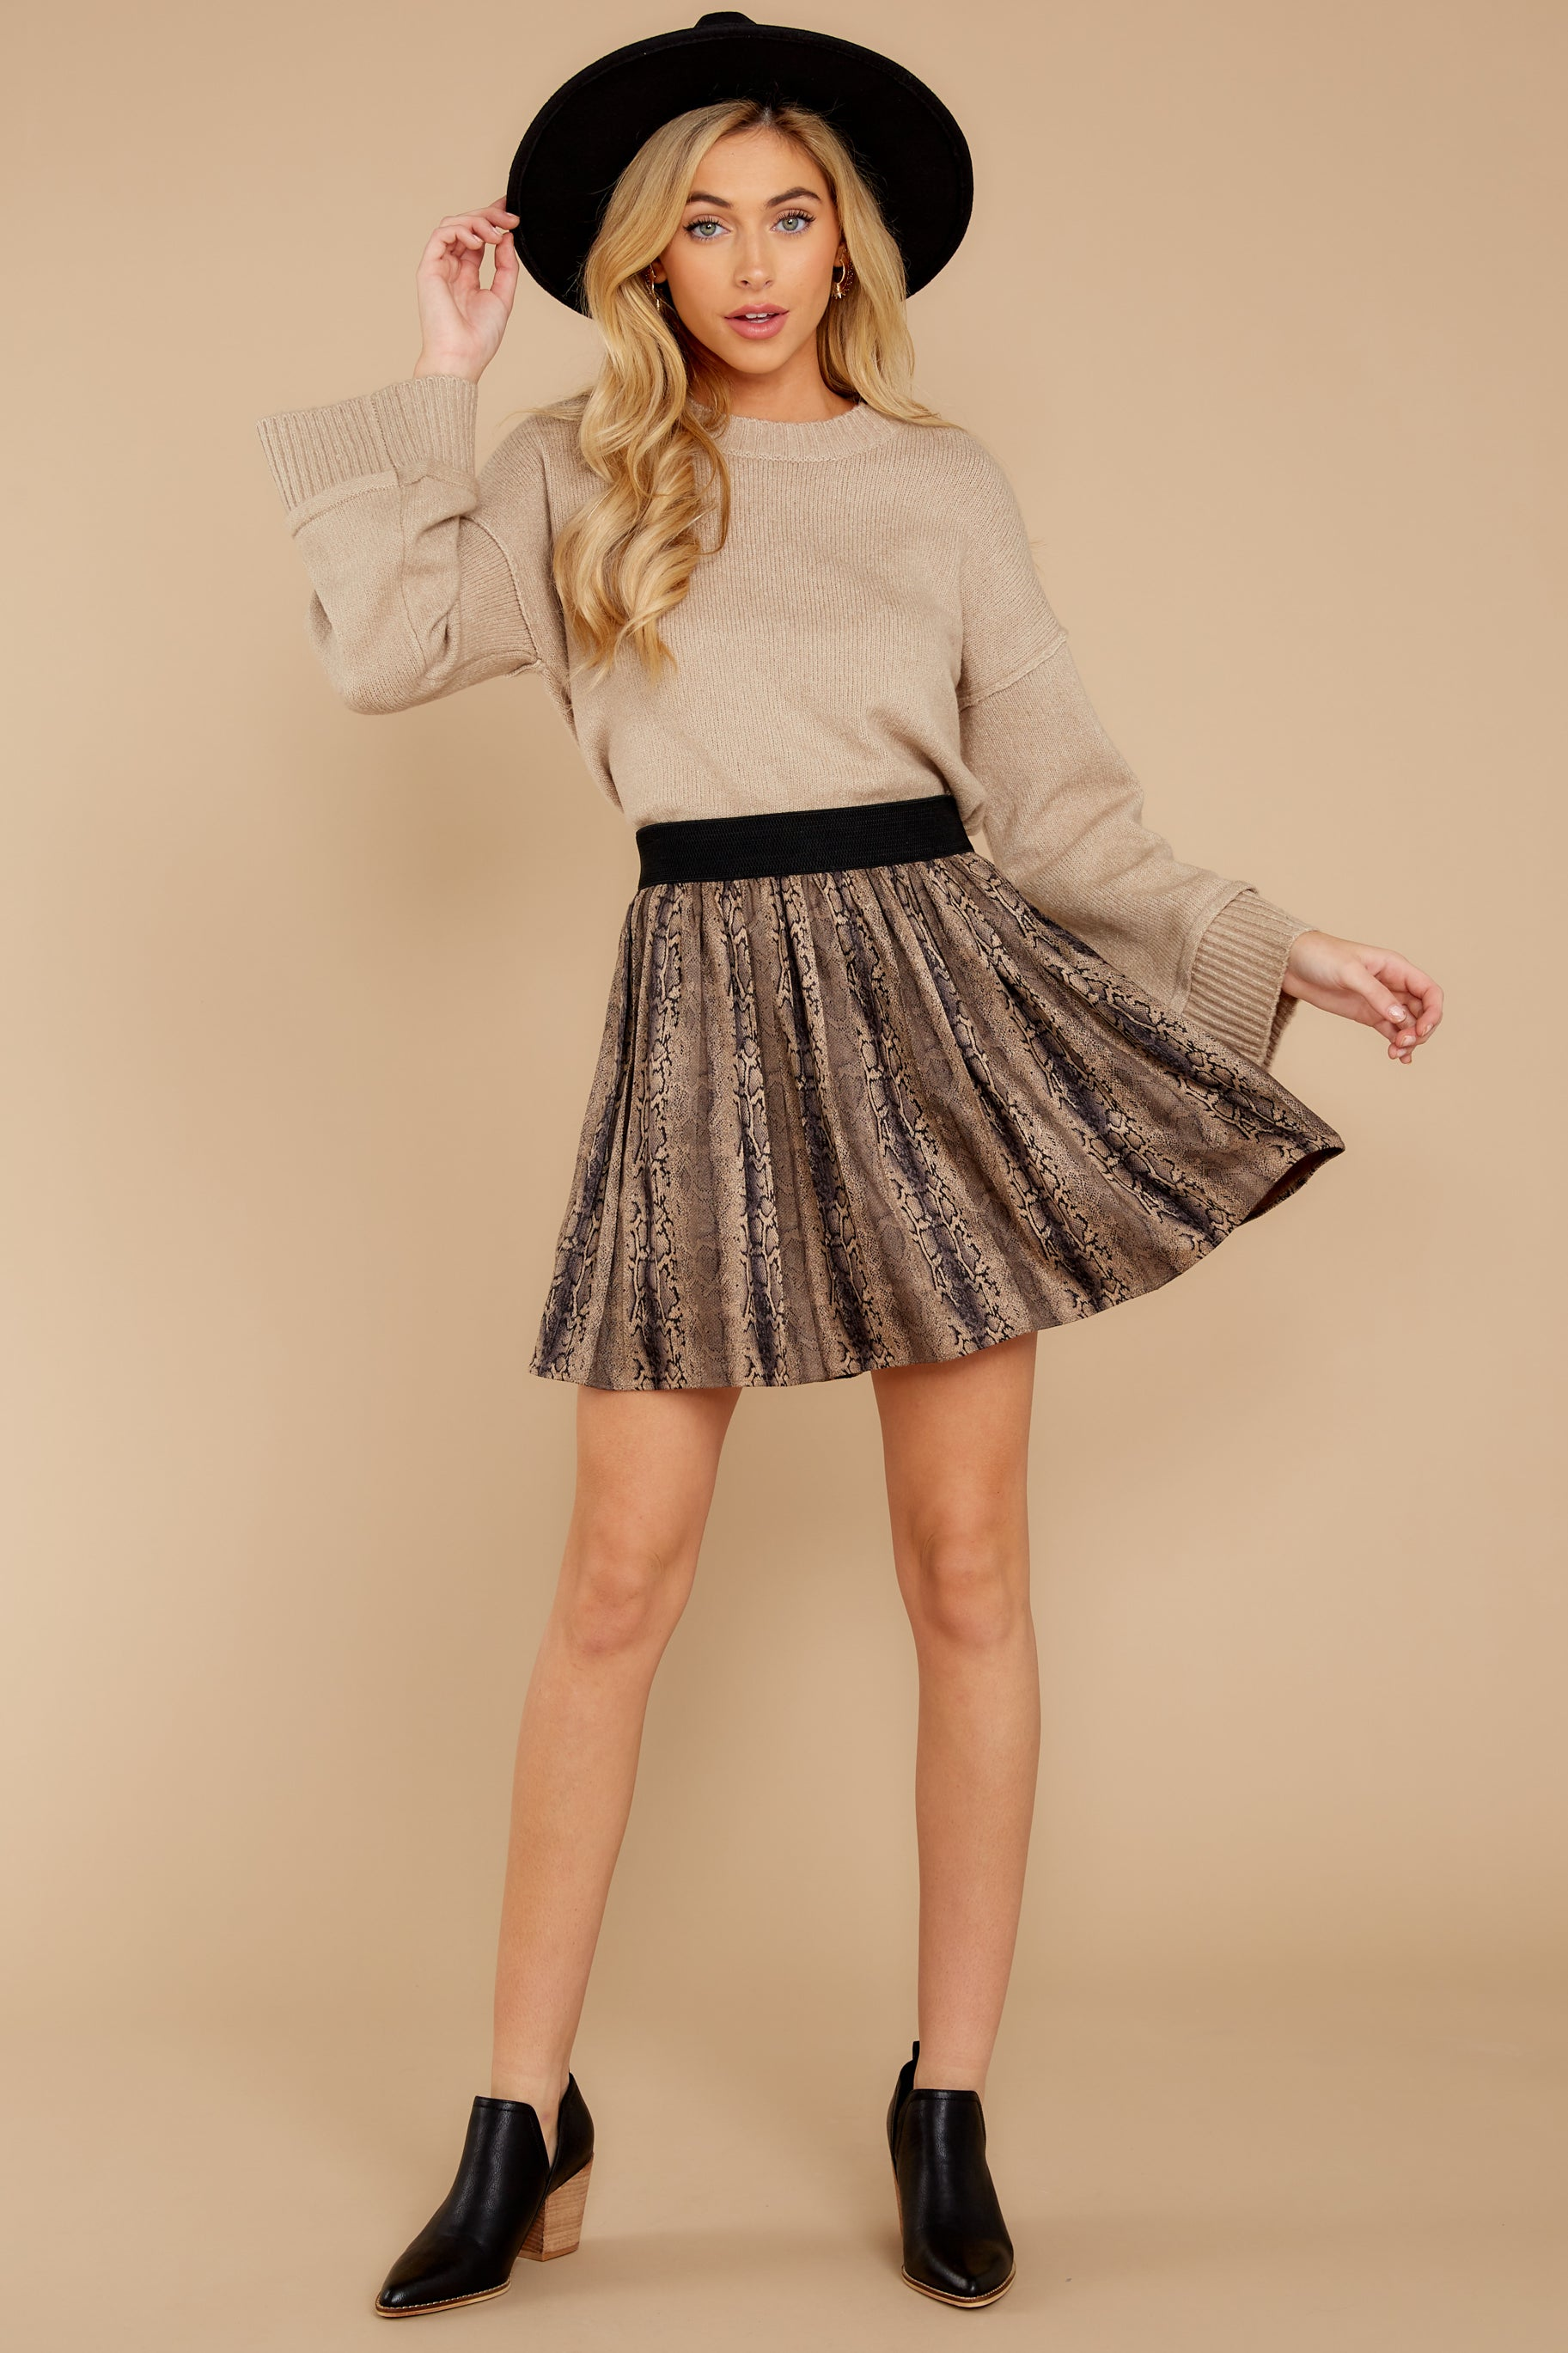 7 Woman About Town Warm Taupe Sweater at reddressboutique.com